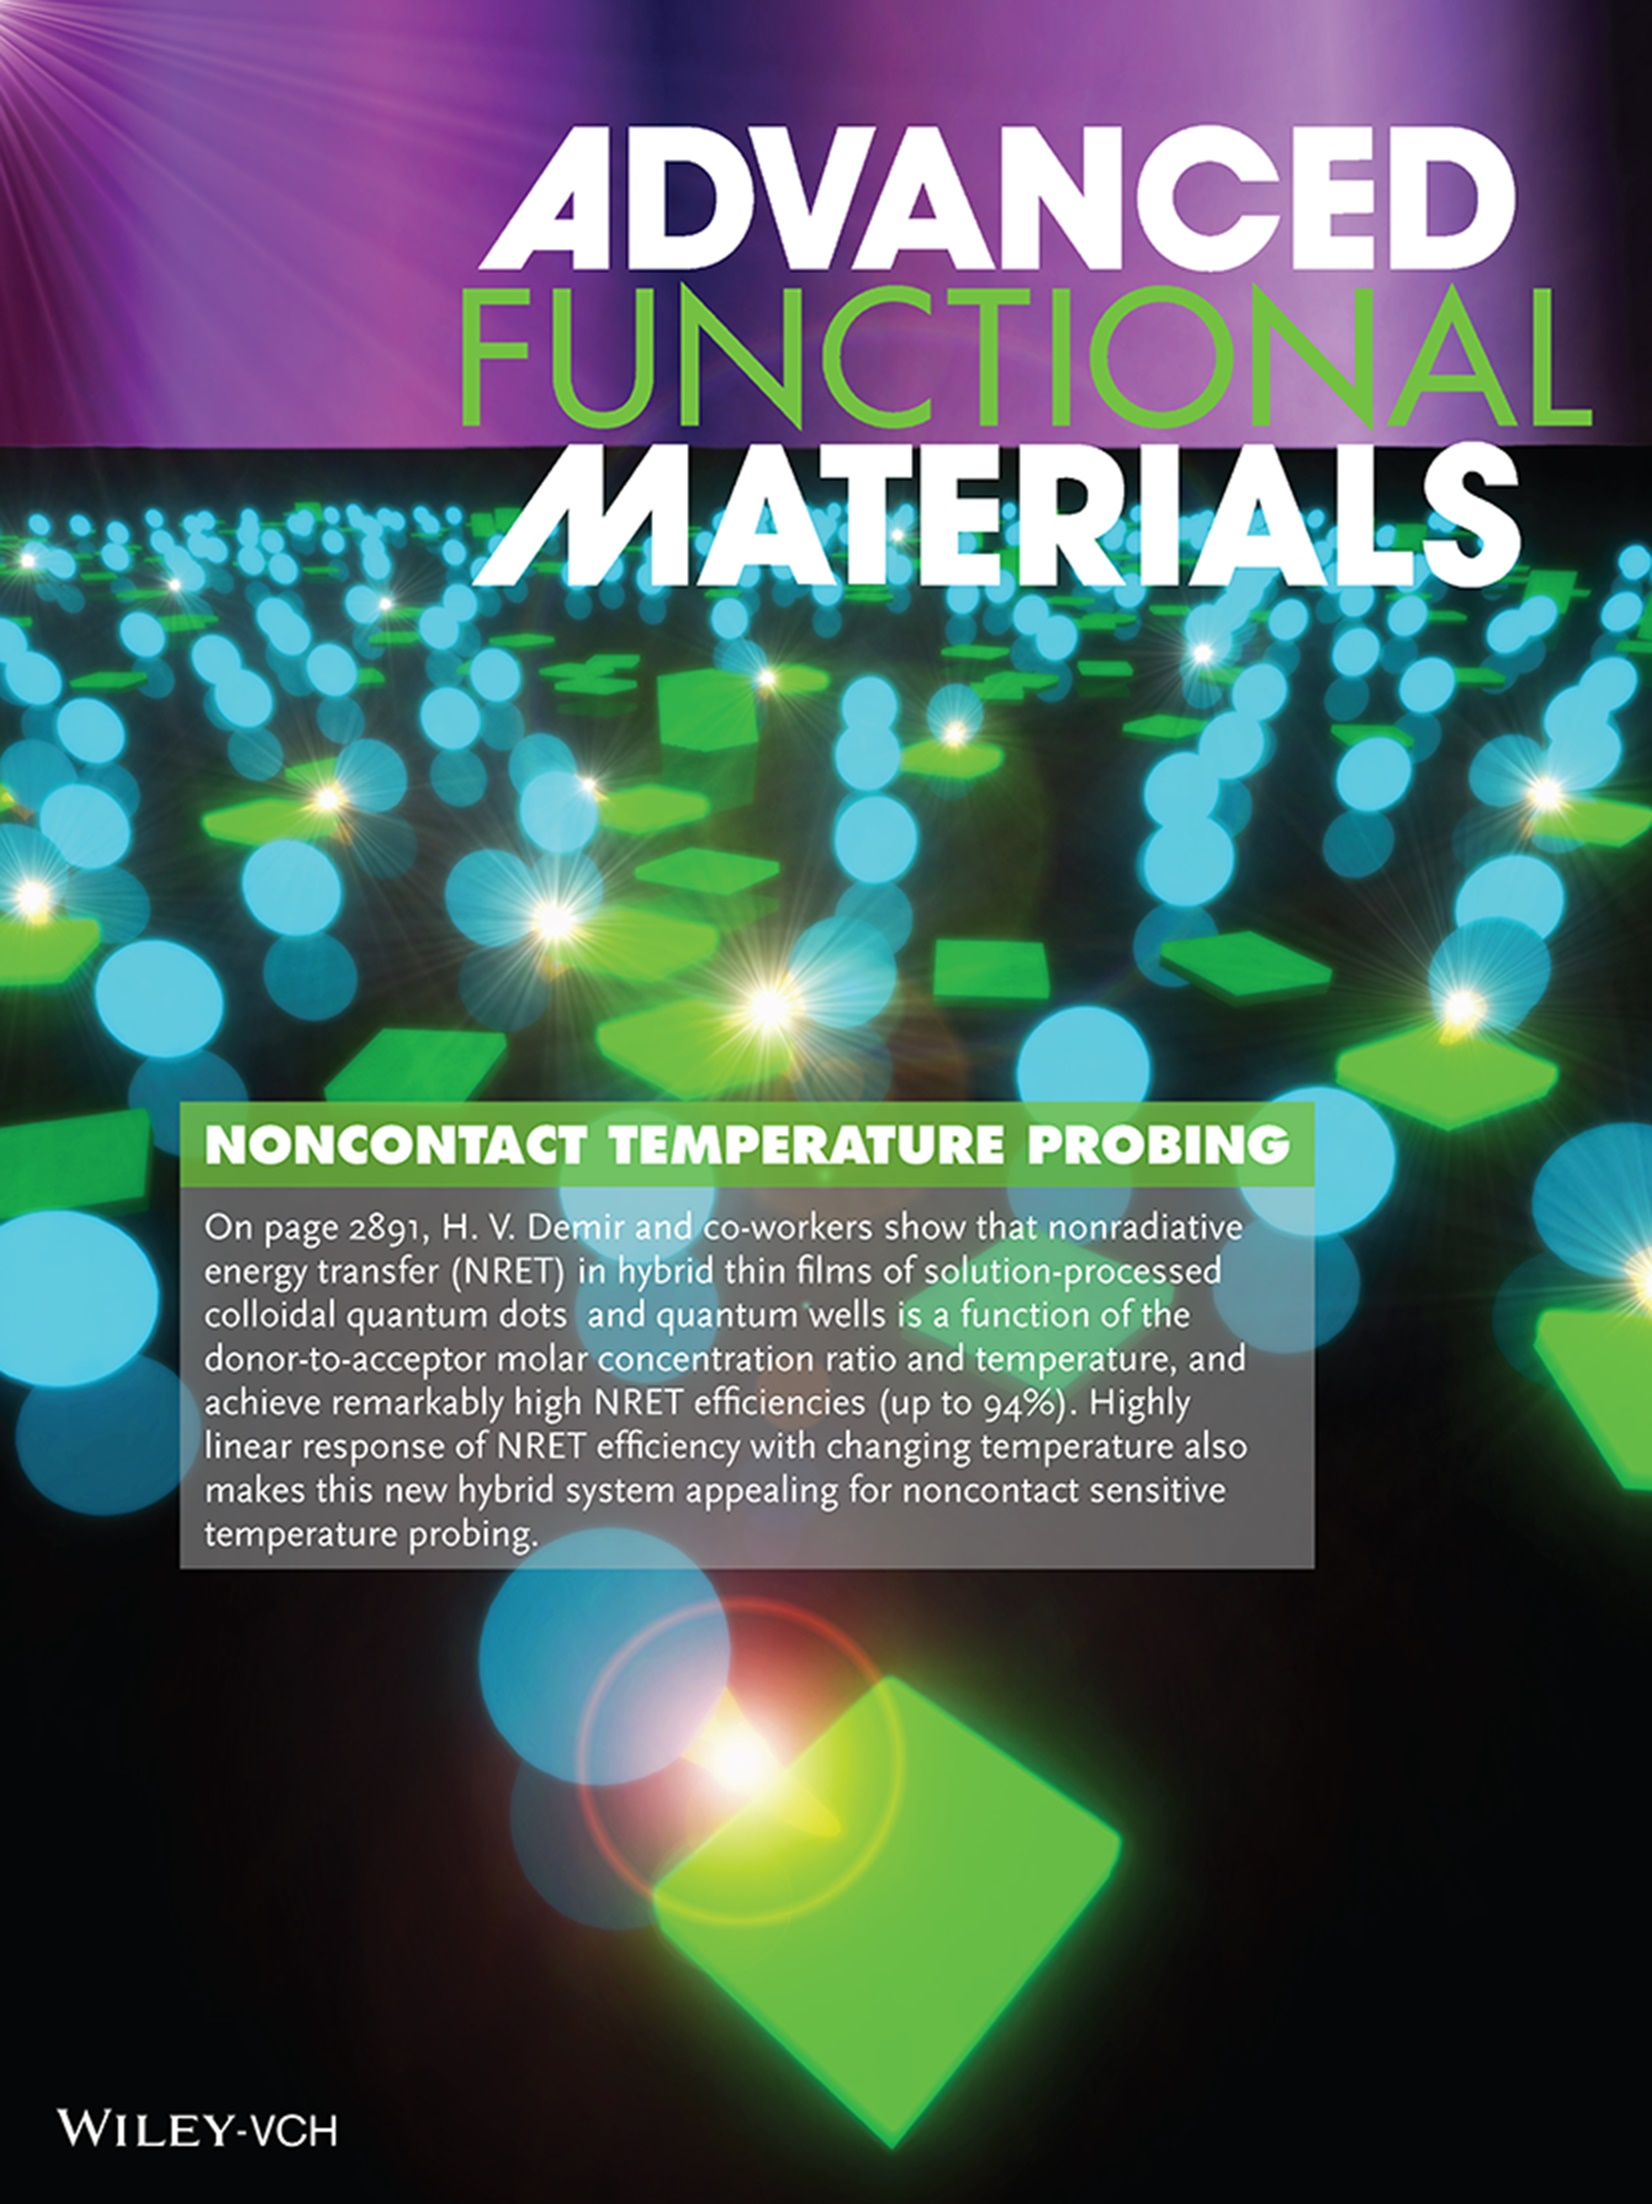 Advanced Functional Materials Cover 1